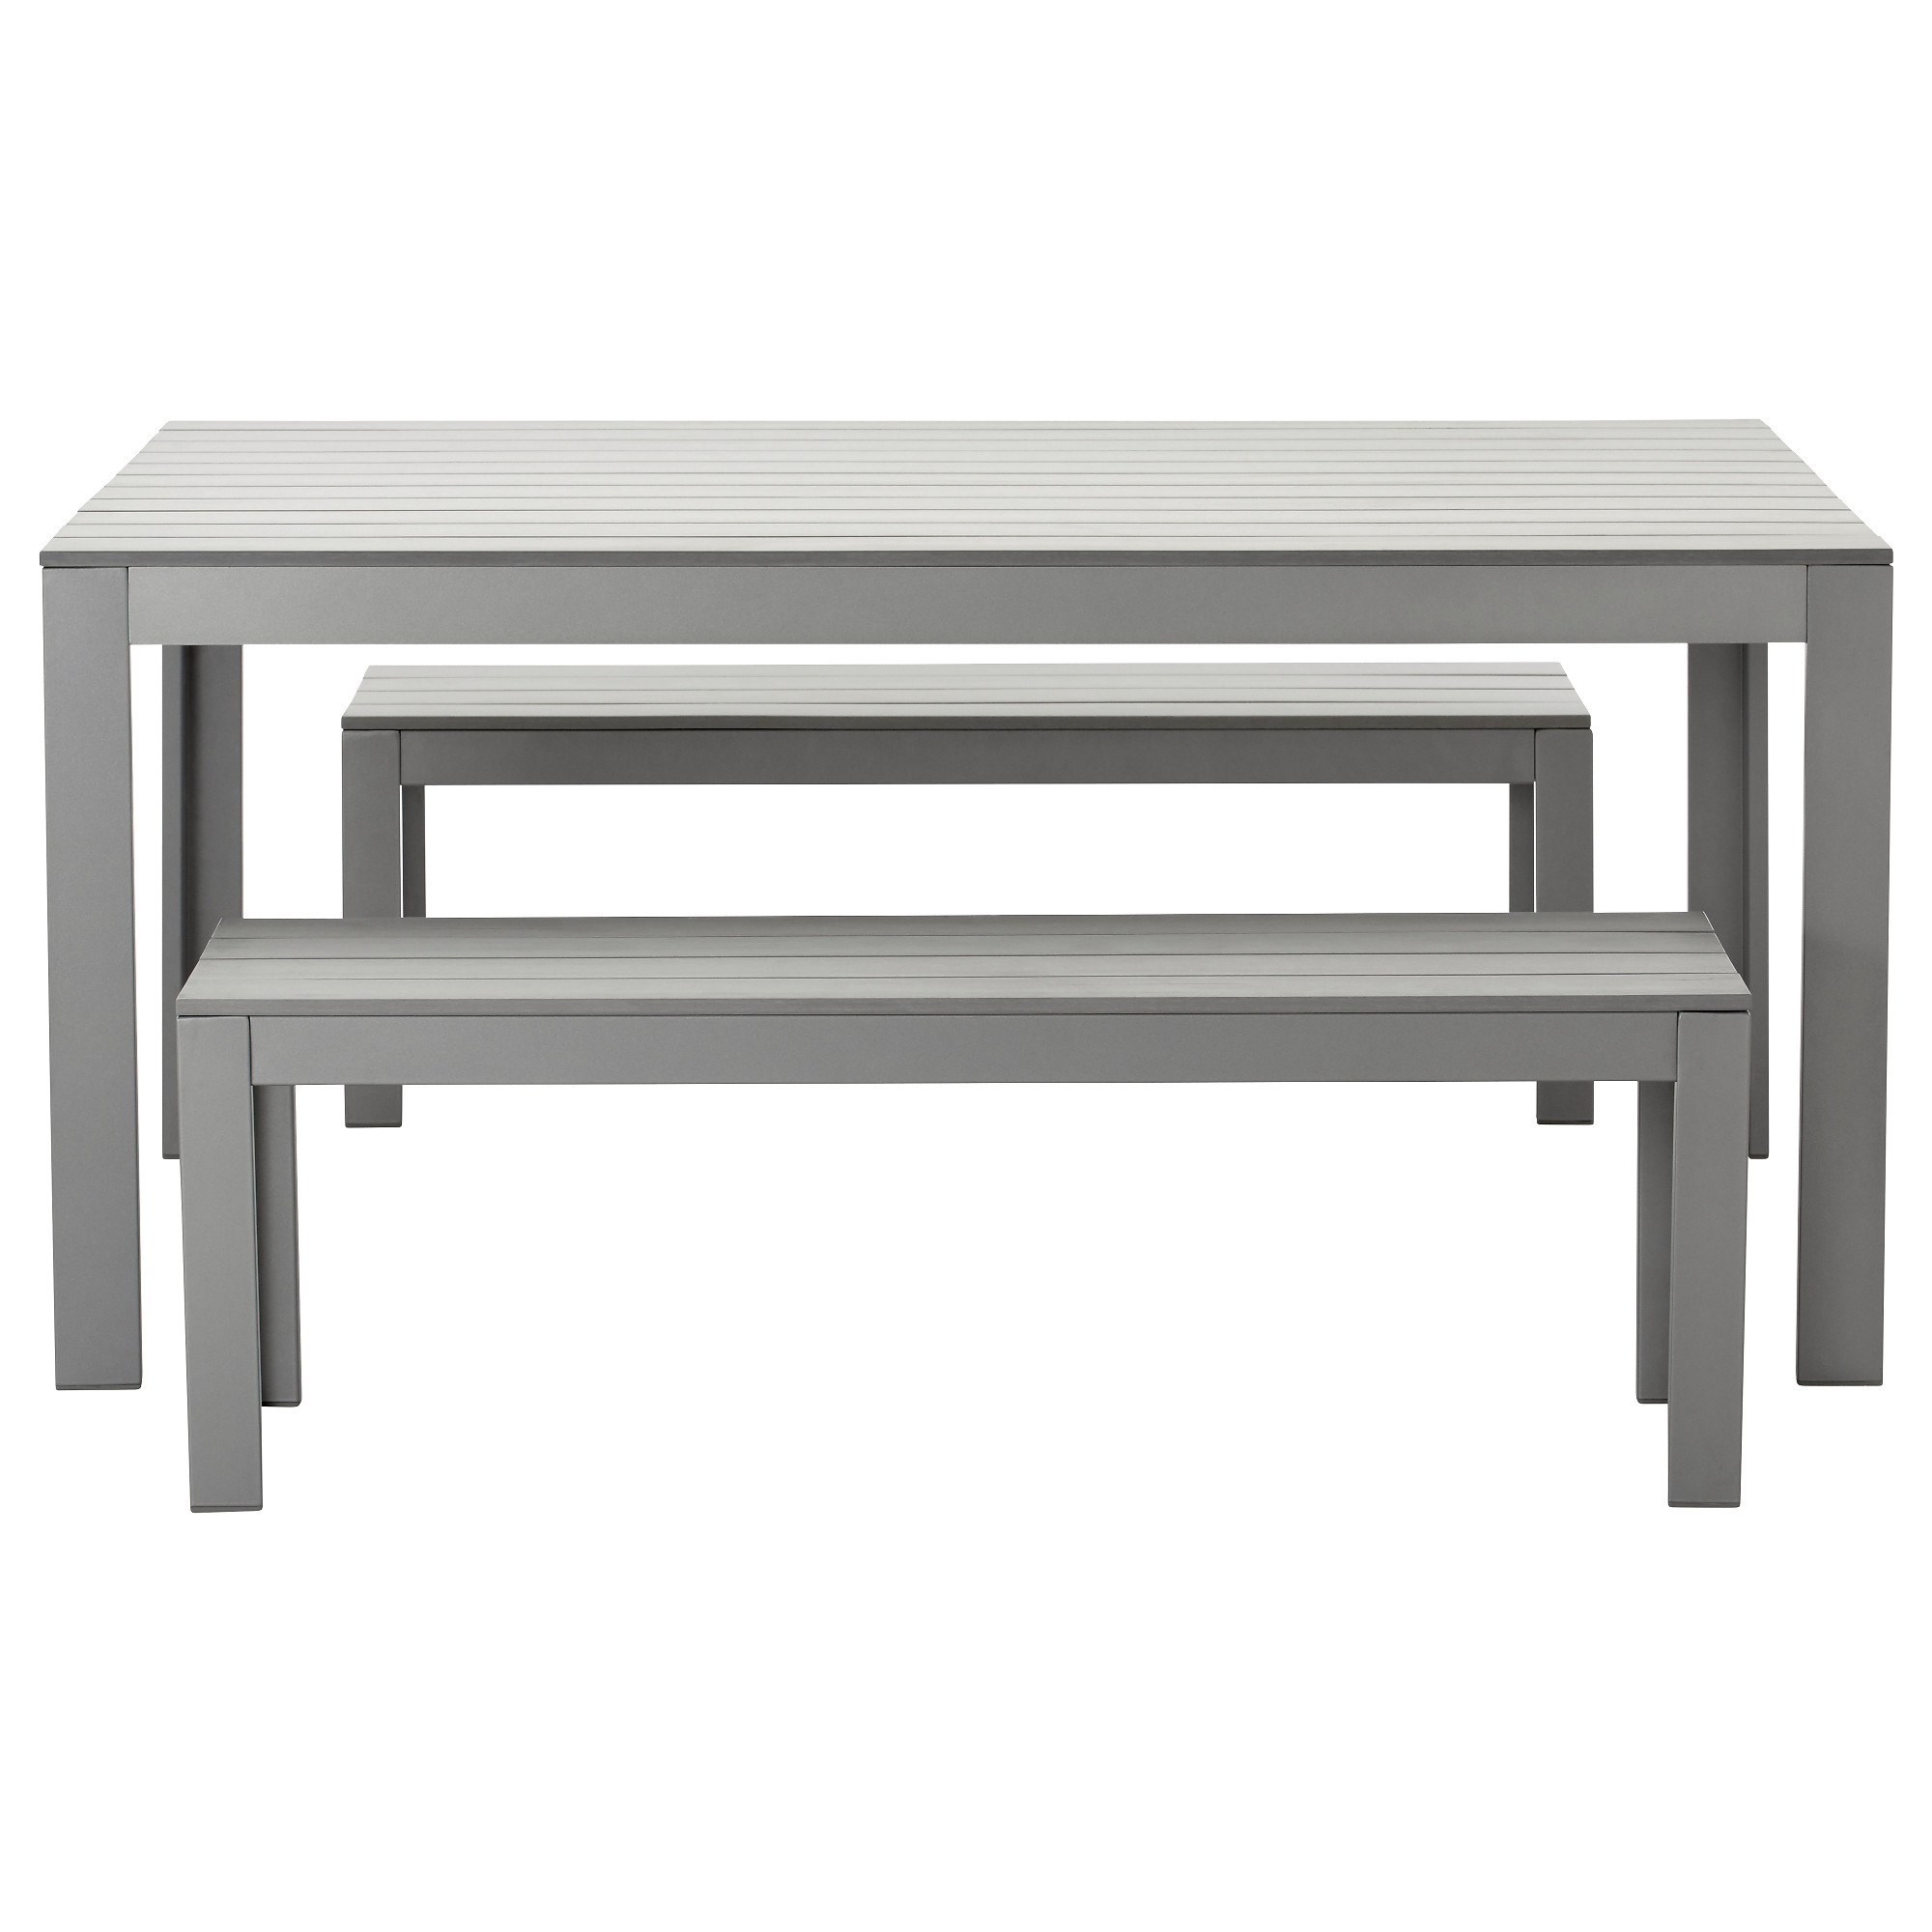 FALSTER Table2 benches outdoor gray IKEA